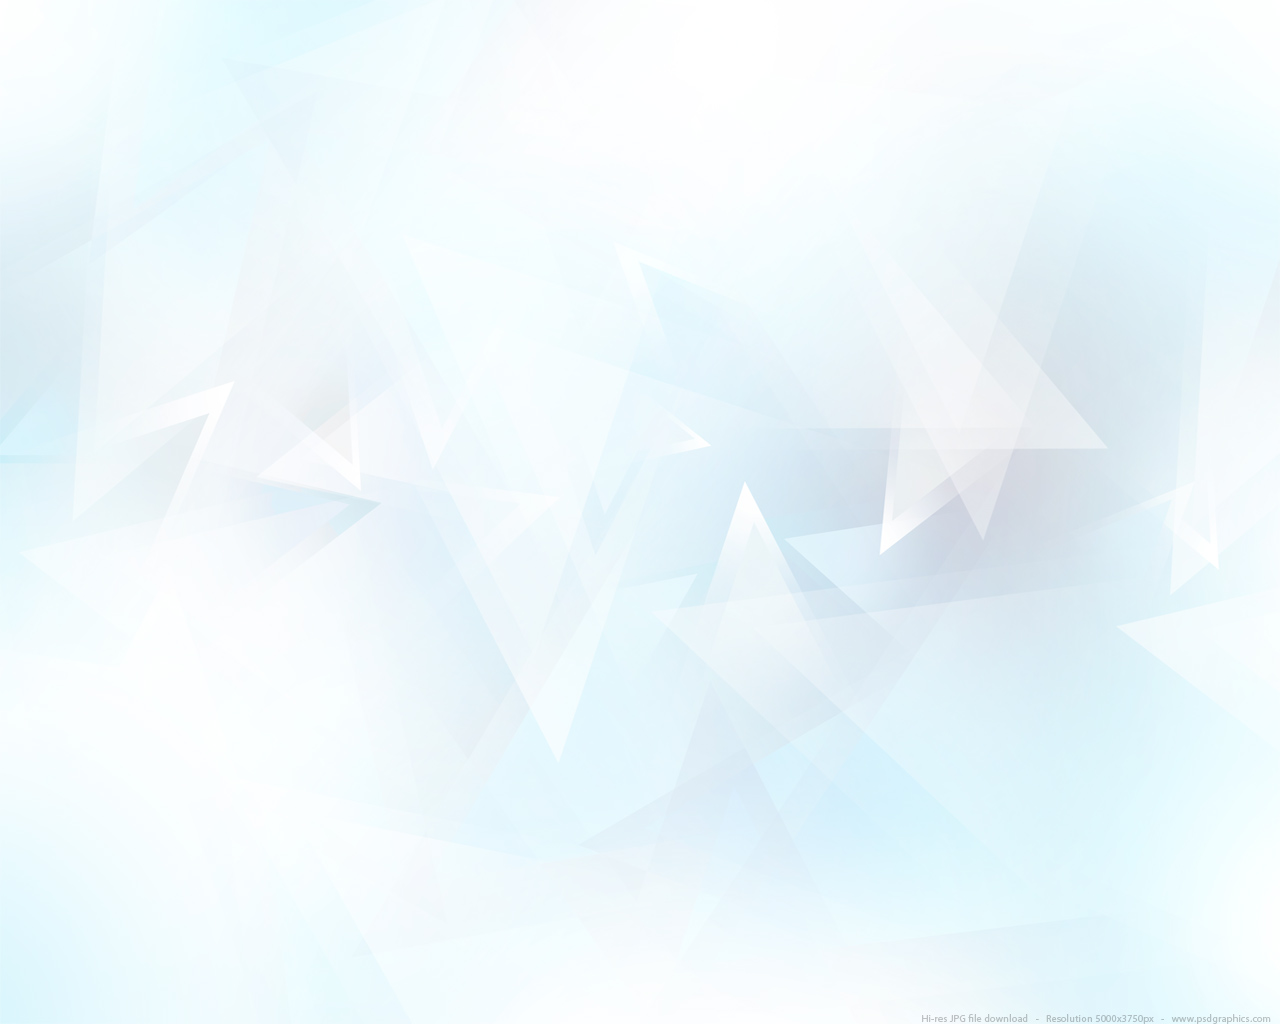 Medium size preview (1280x1024px): light blue abstract